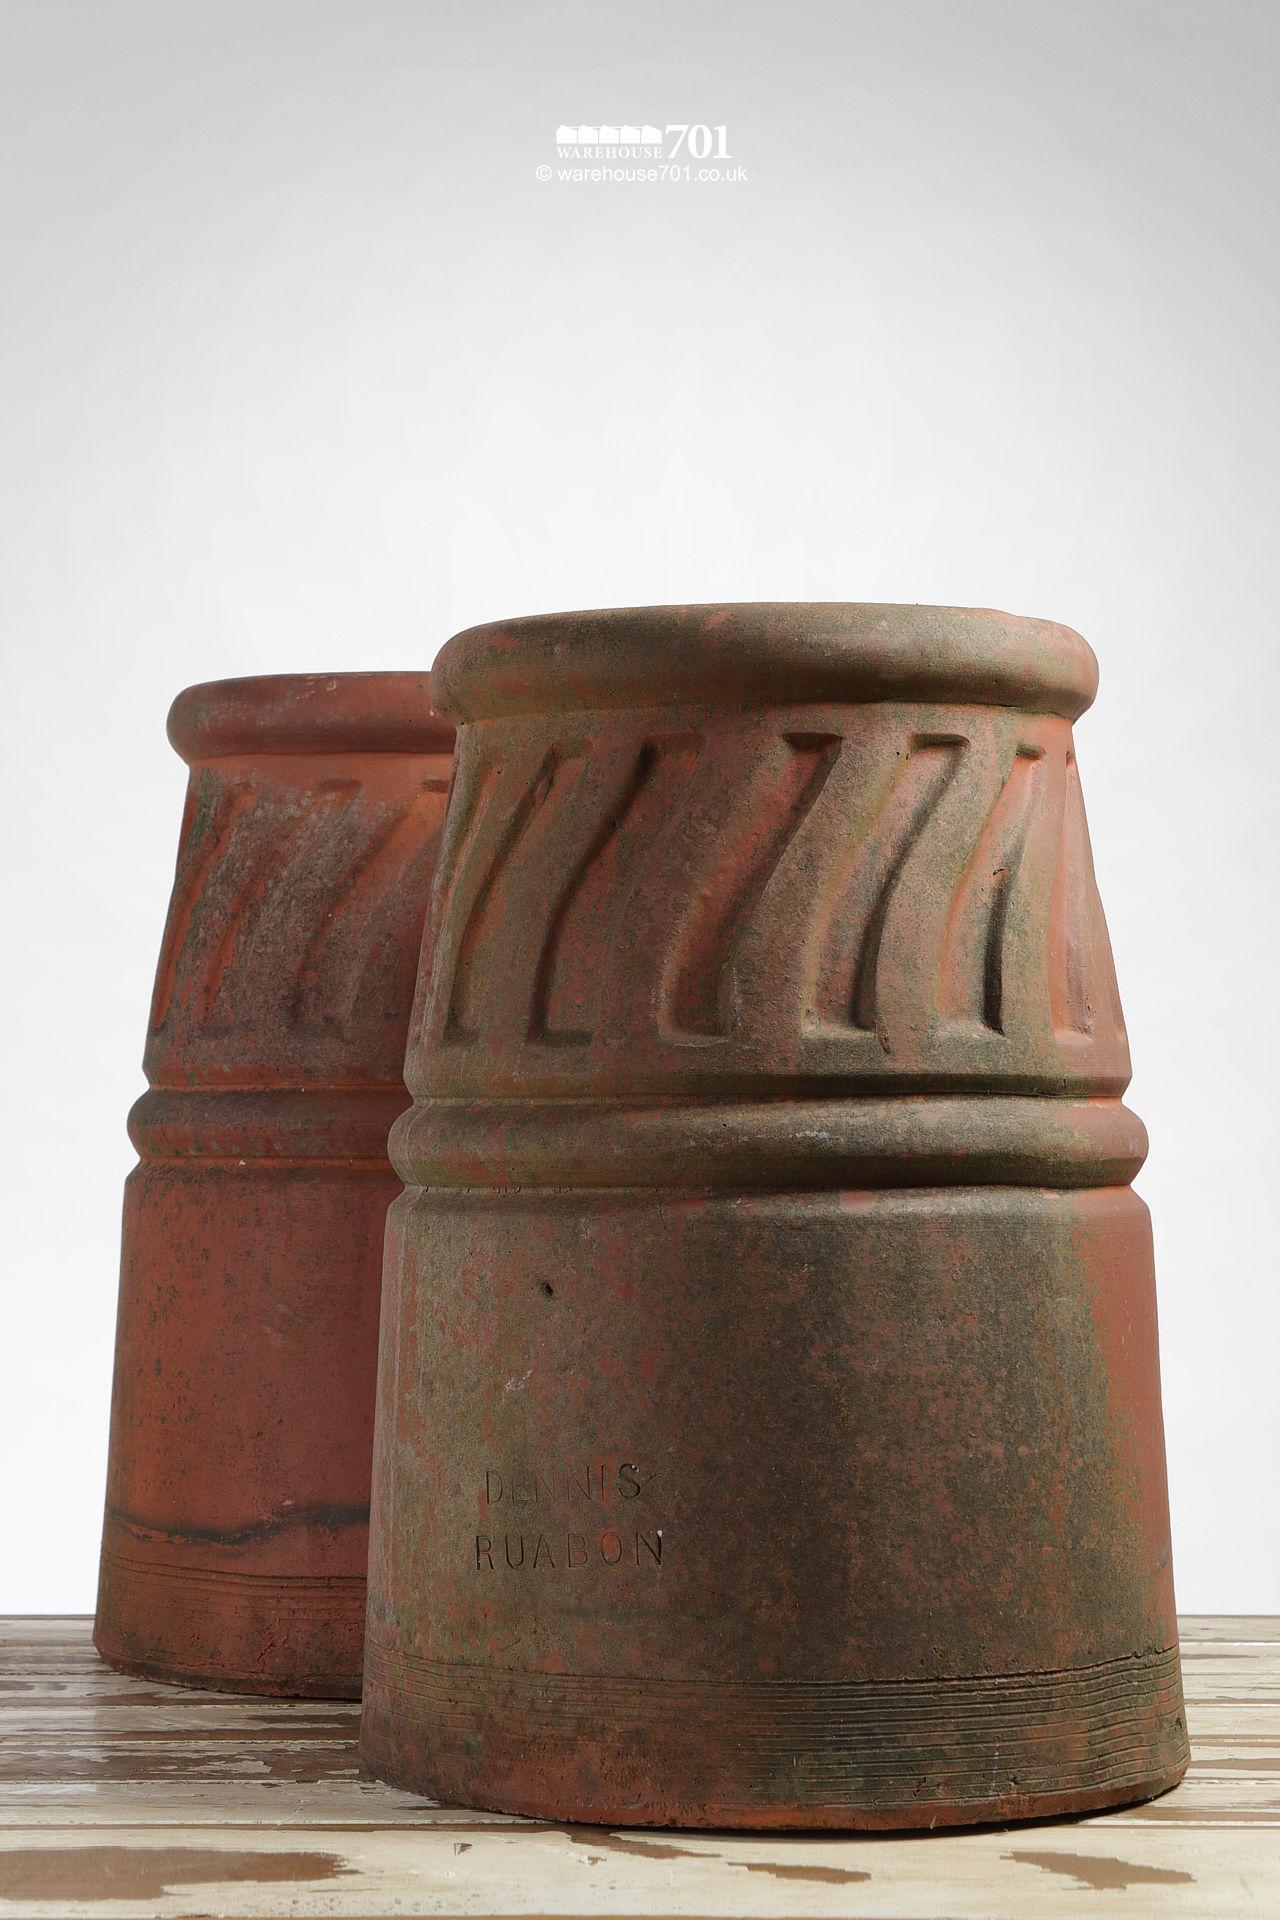 Pair of Reclaimed Red Clay Dennis Ruabon Chimney Pots